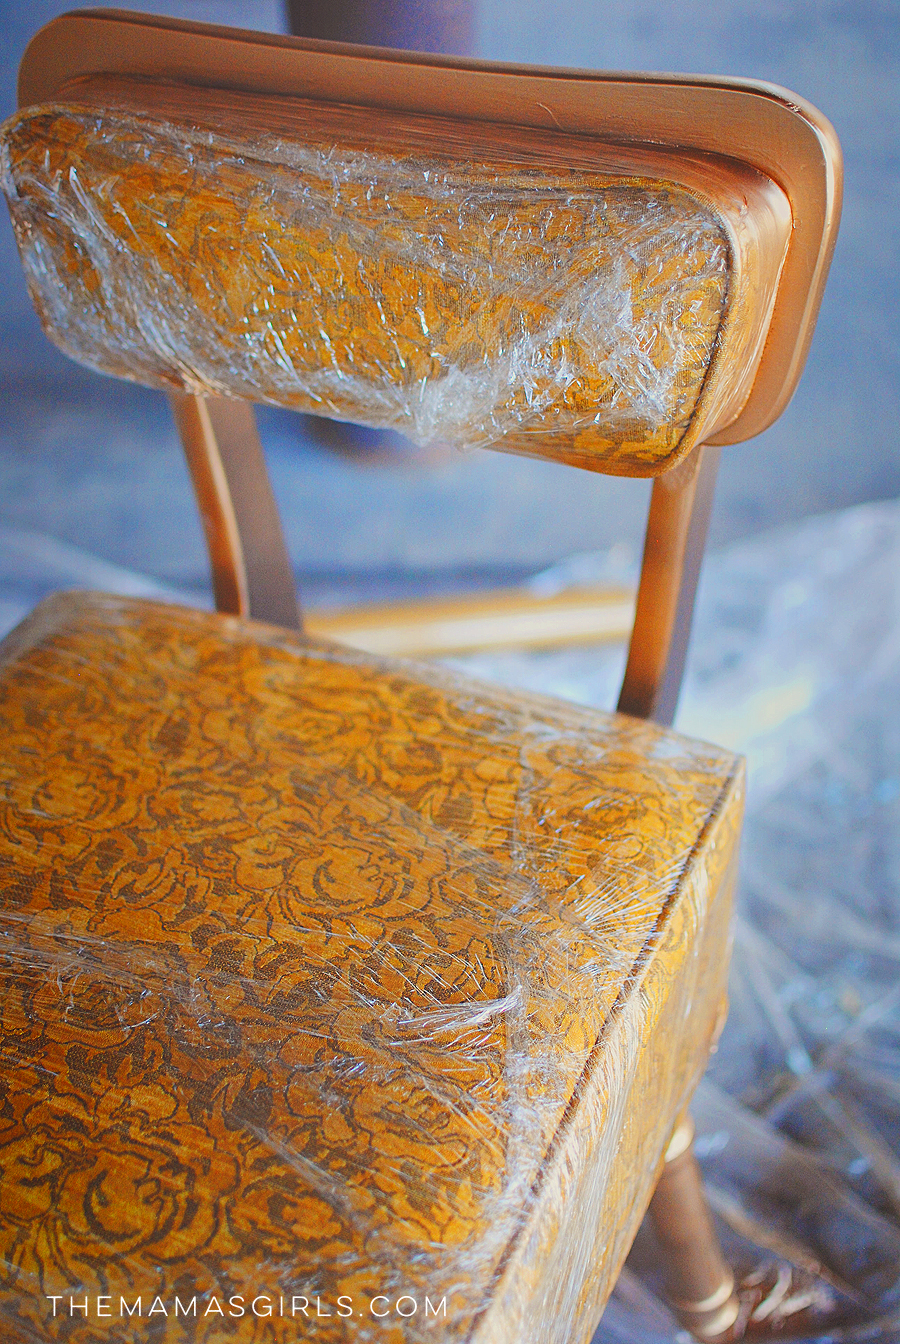 How to mask off furniture when spray painting with plastic wrap Plastic for furniture